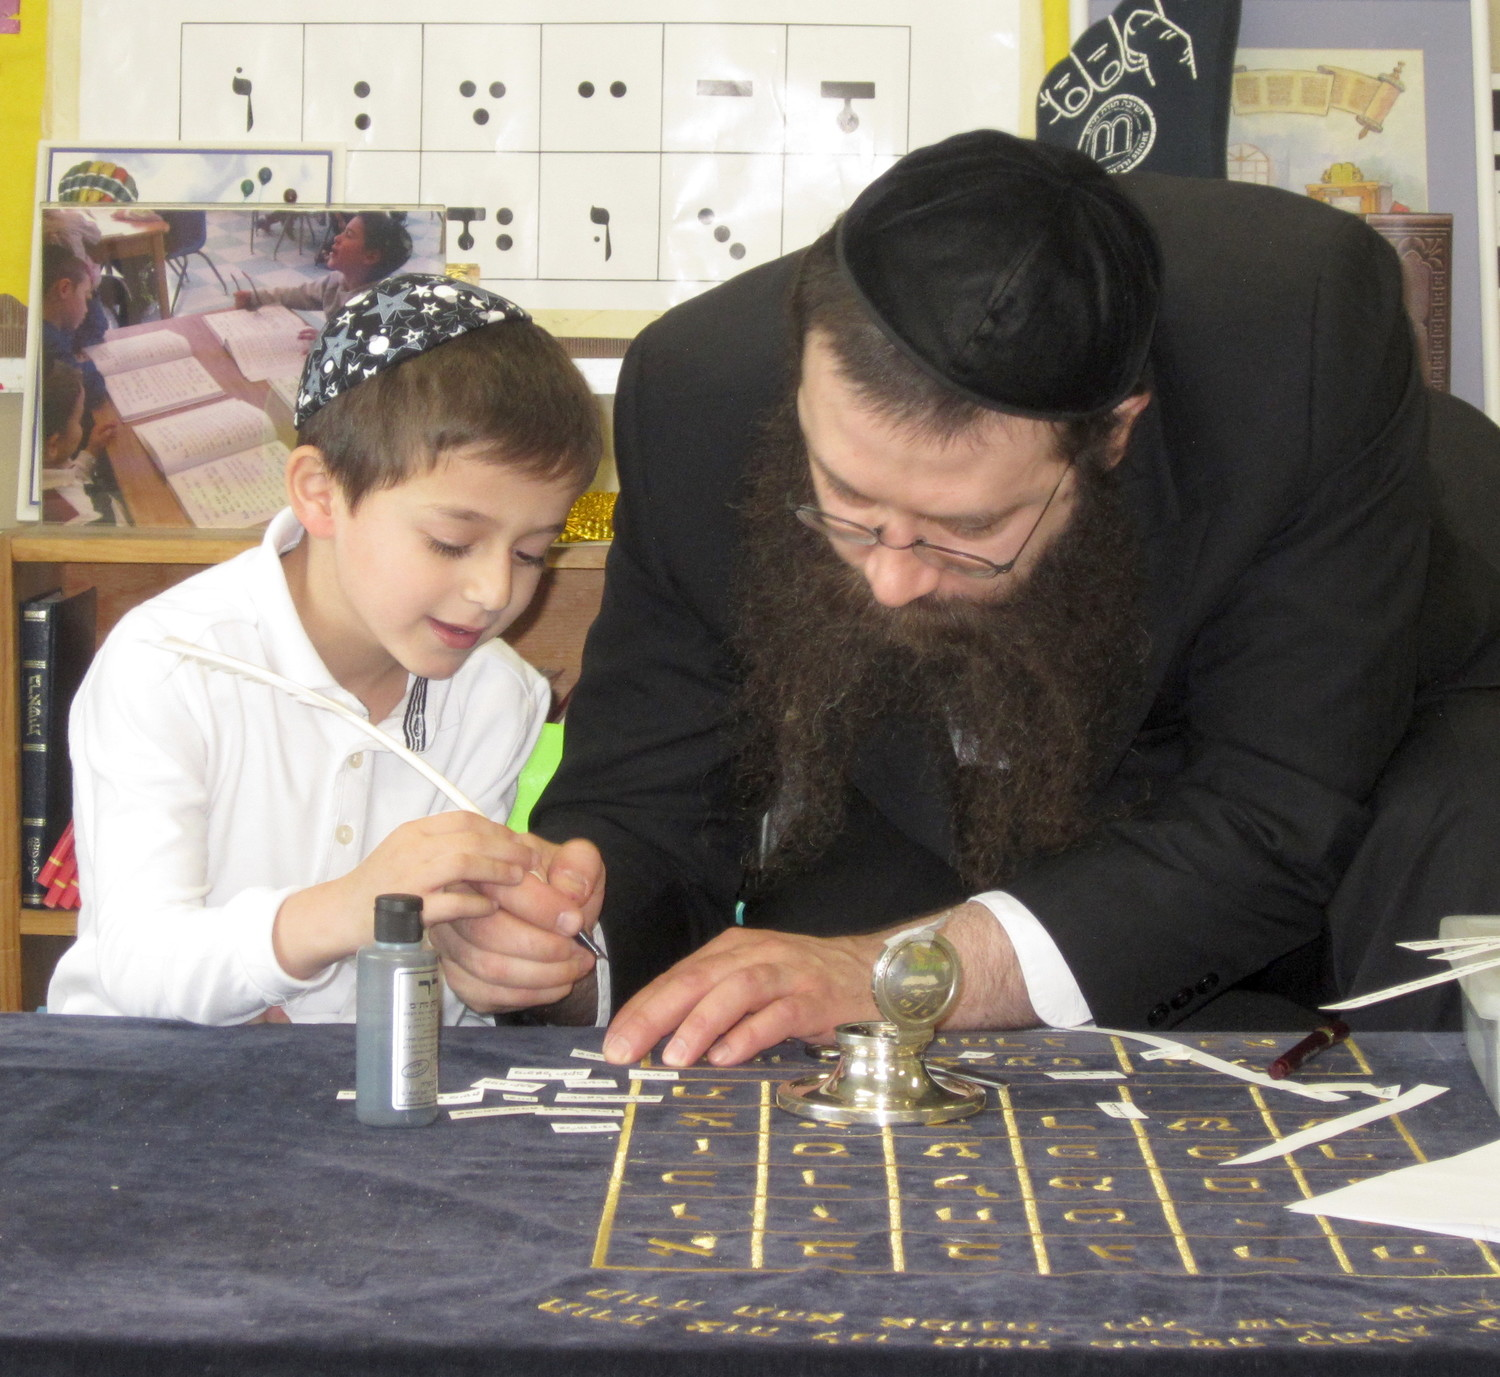 Asher Romer, a Pre-1A student at YOSS, is pictured with the sofer, Rabbi Betzalel Katkovsky.